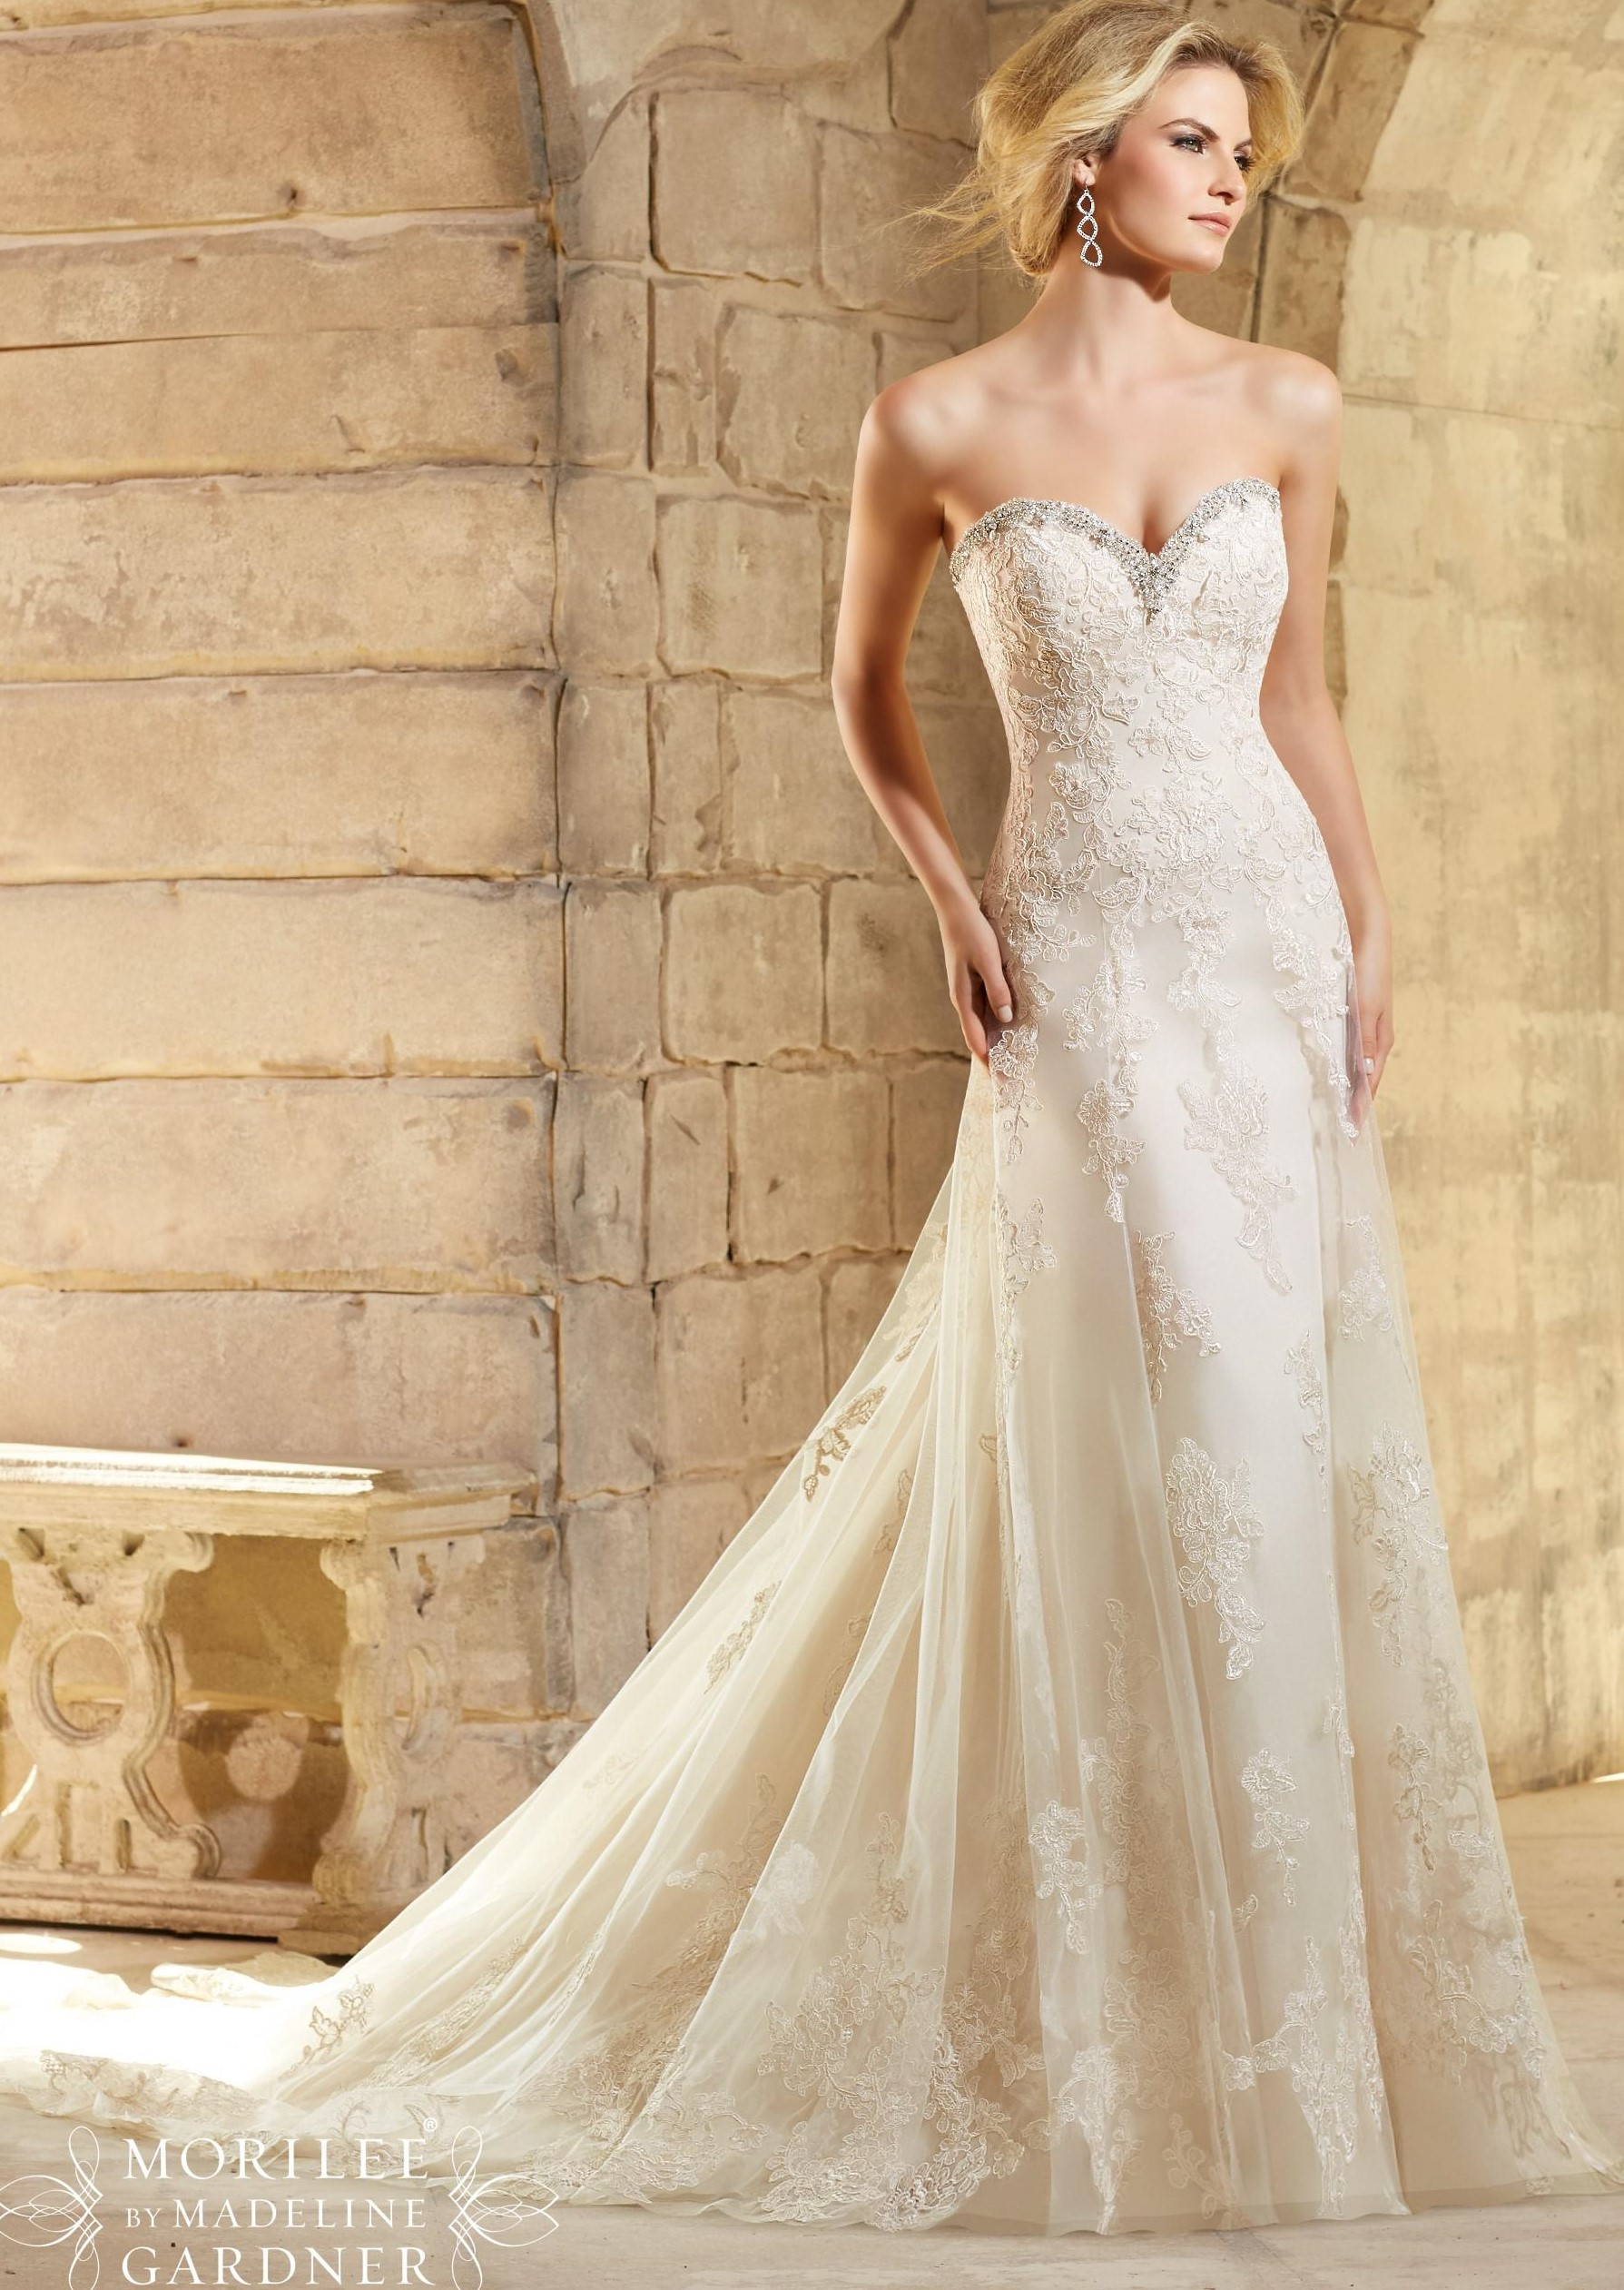 Mori Lee - 2774, L.Gold/Silver: 40